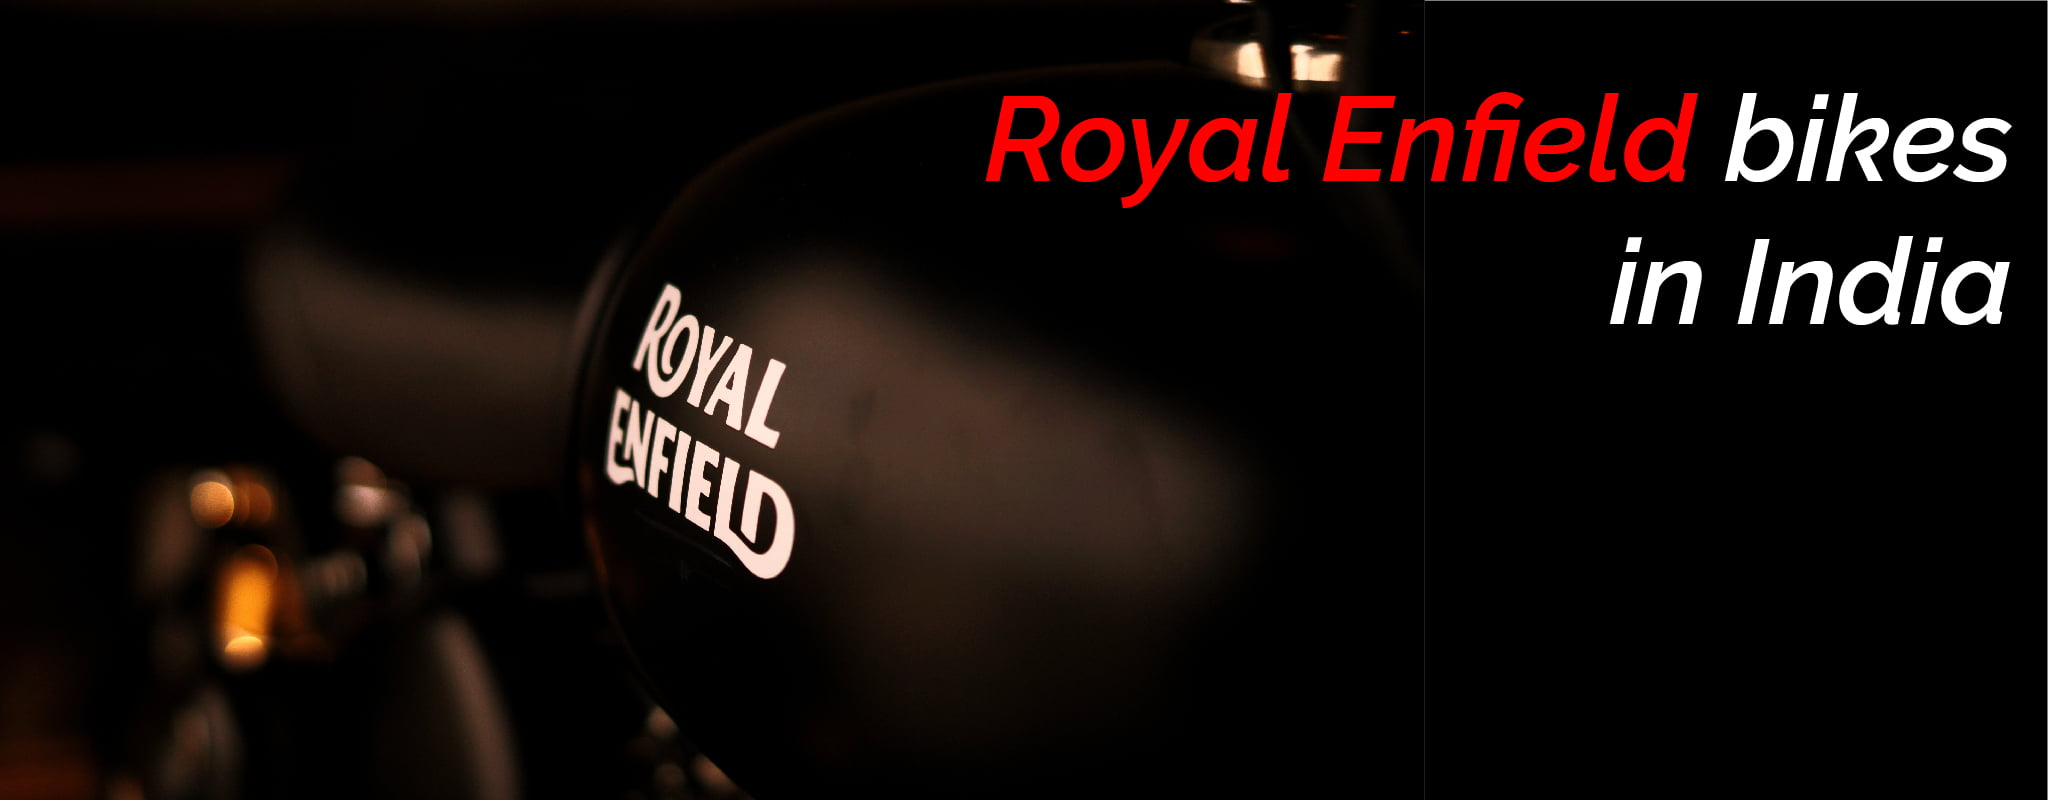 Royal Enfield bikes in India